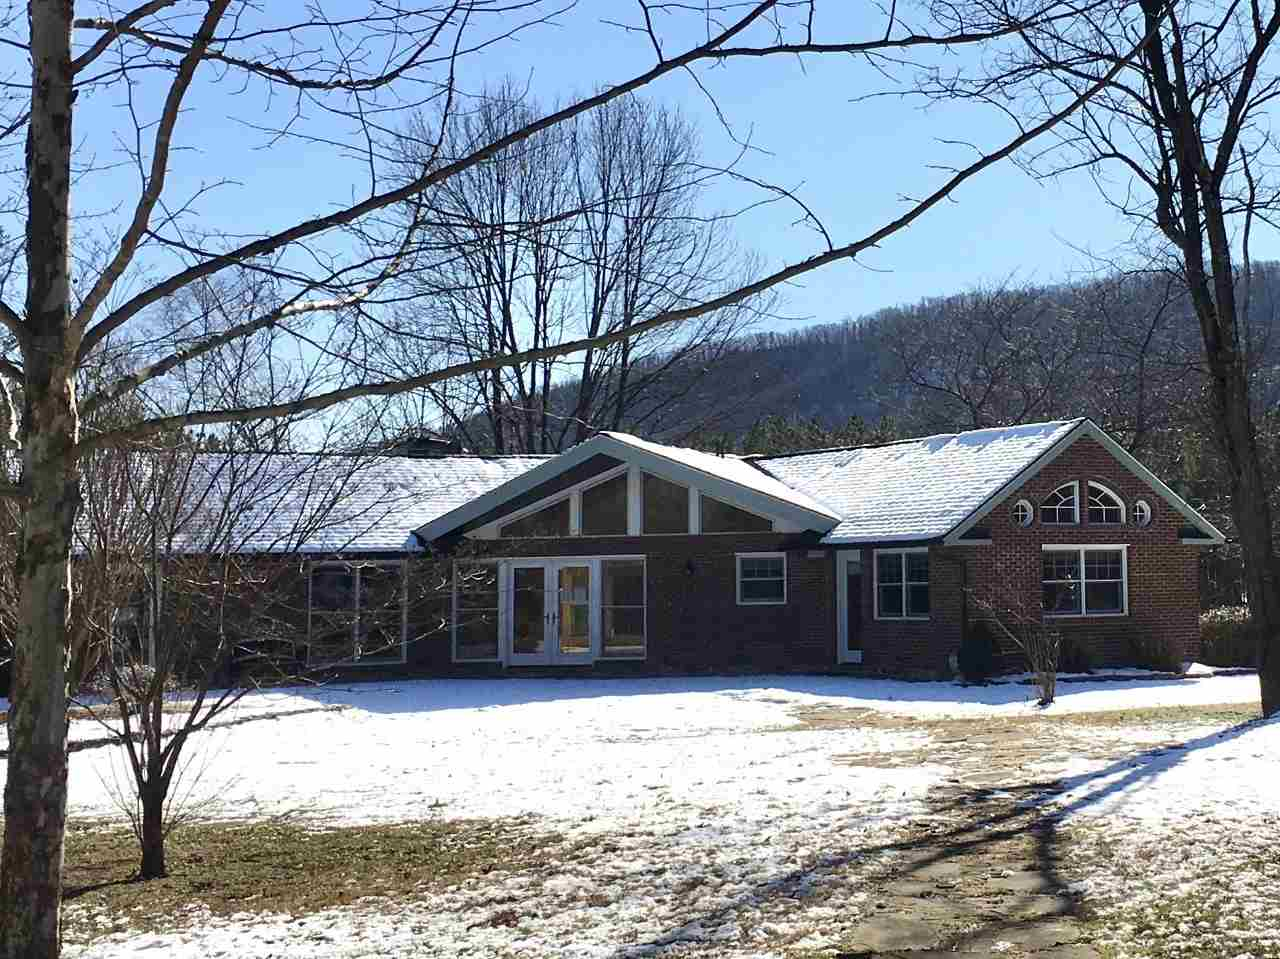 818 Fox Hollow Rd, Afton